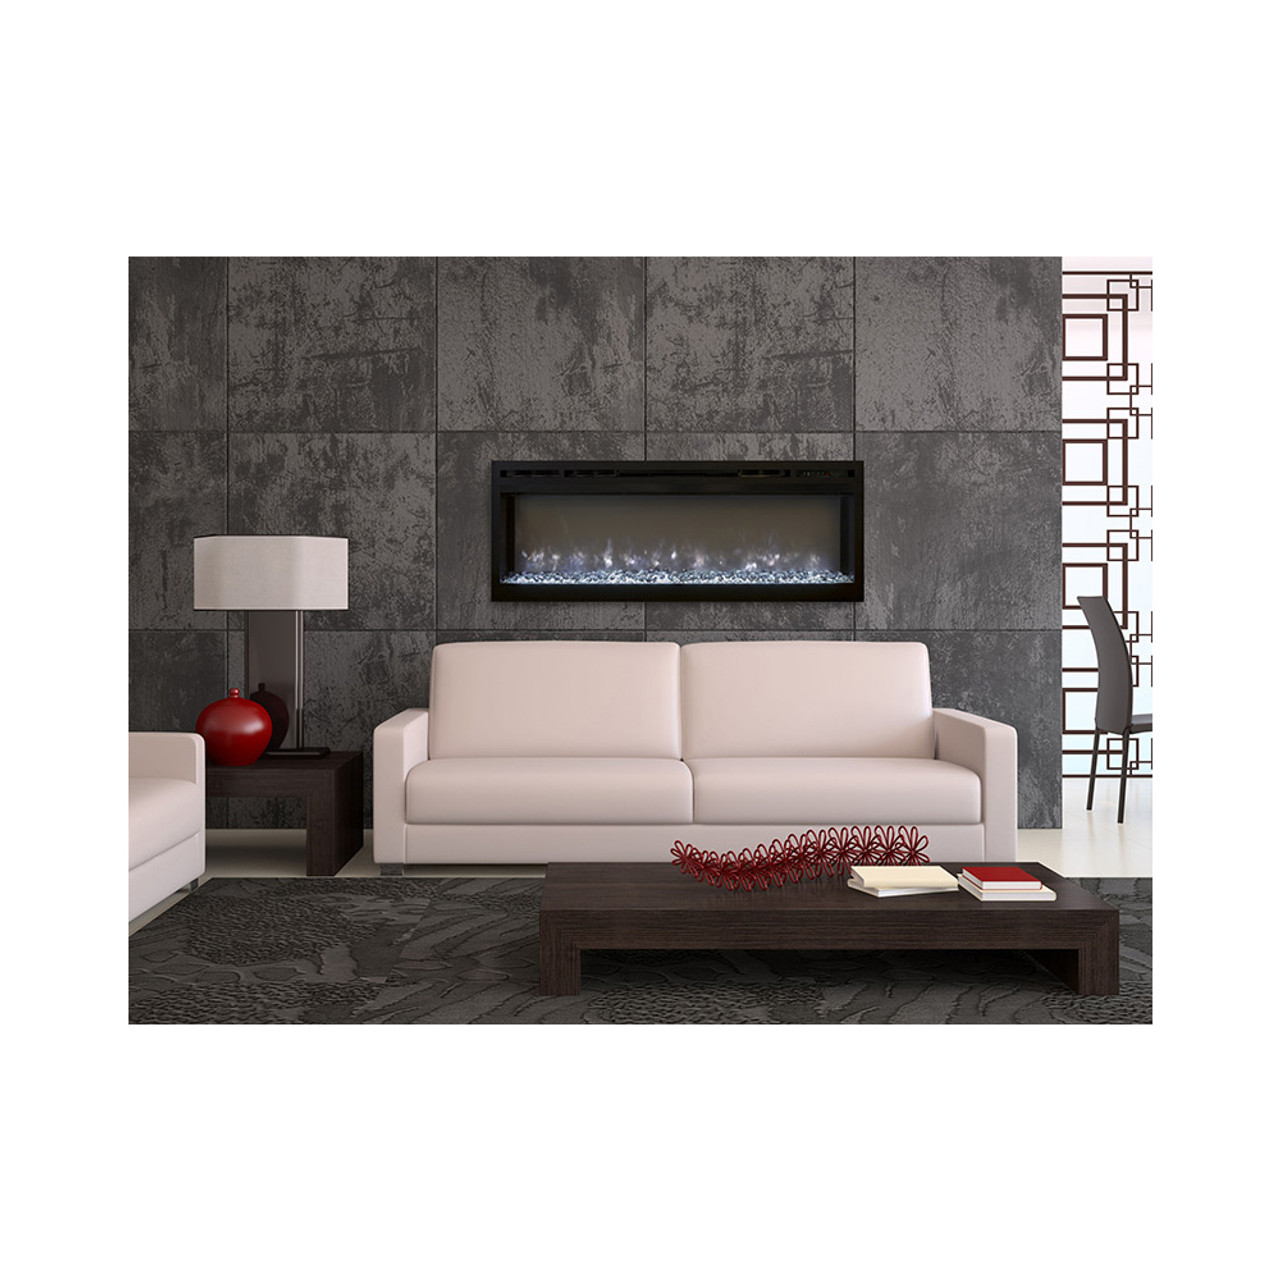 Design Linear Fireplace flames spectrum 74 inch linear electric fireplace sl74 b modern b